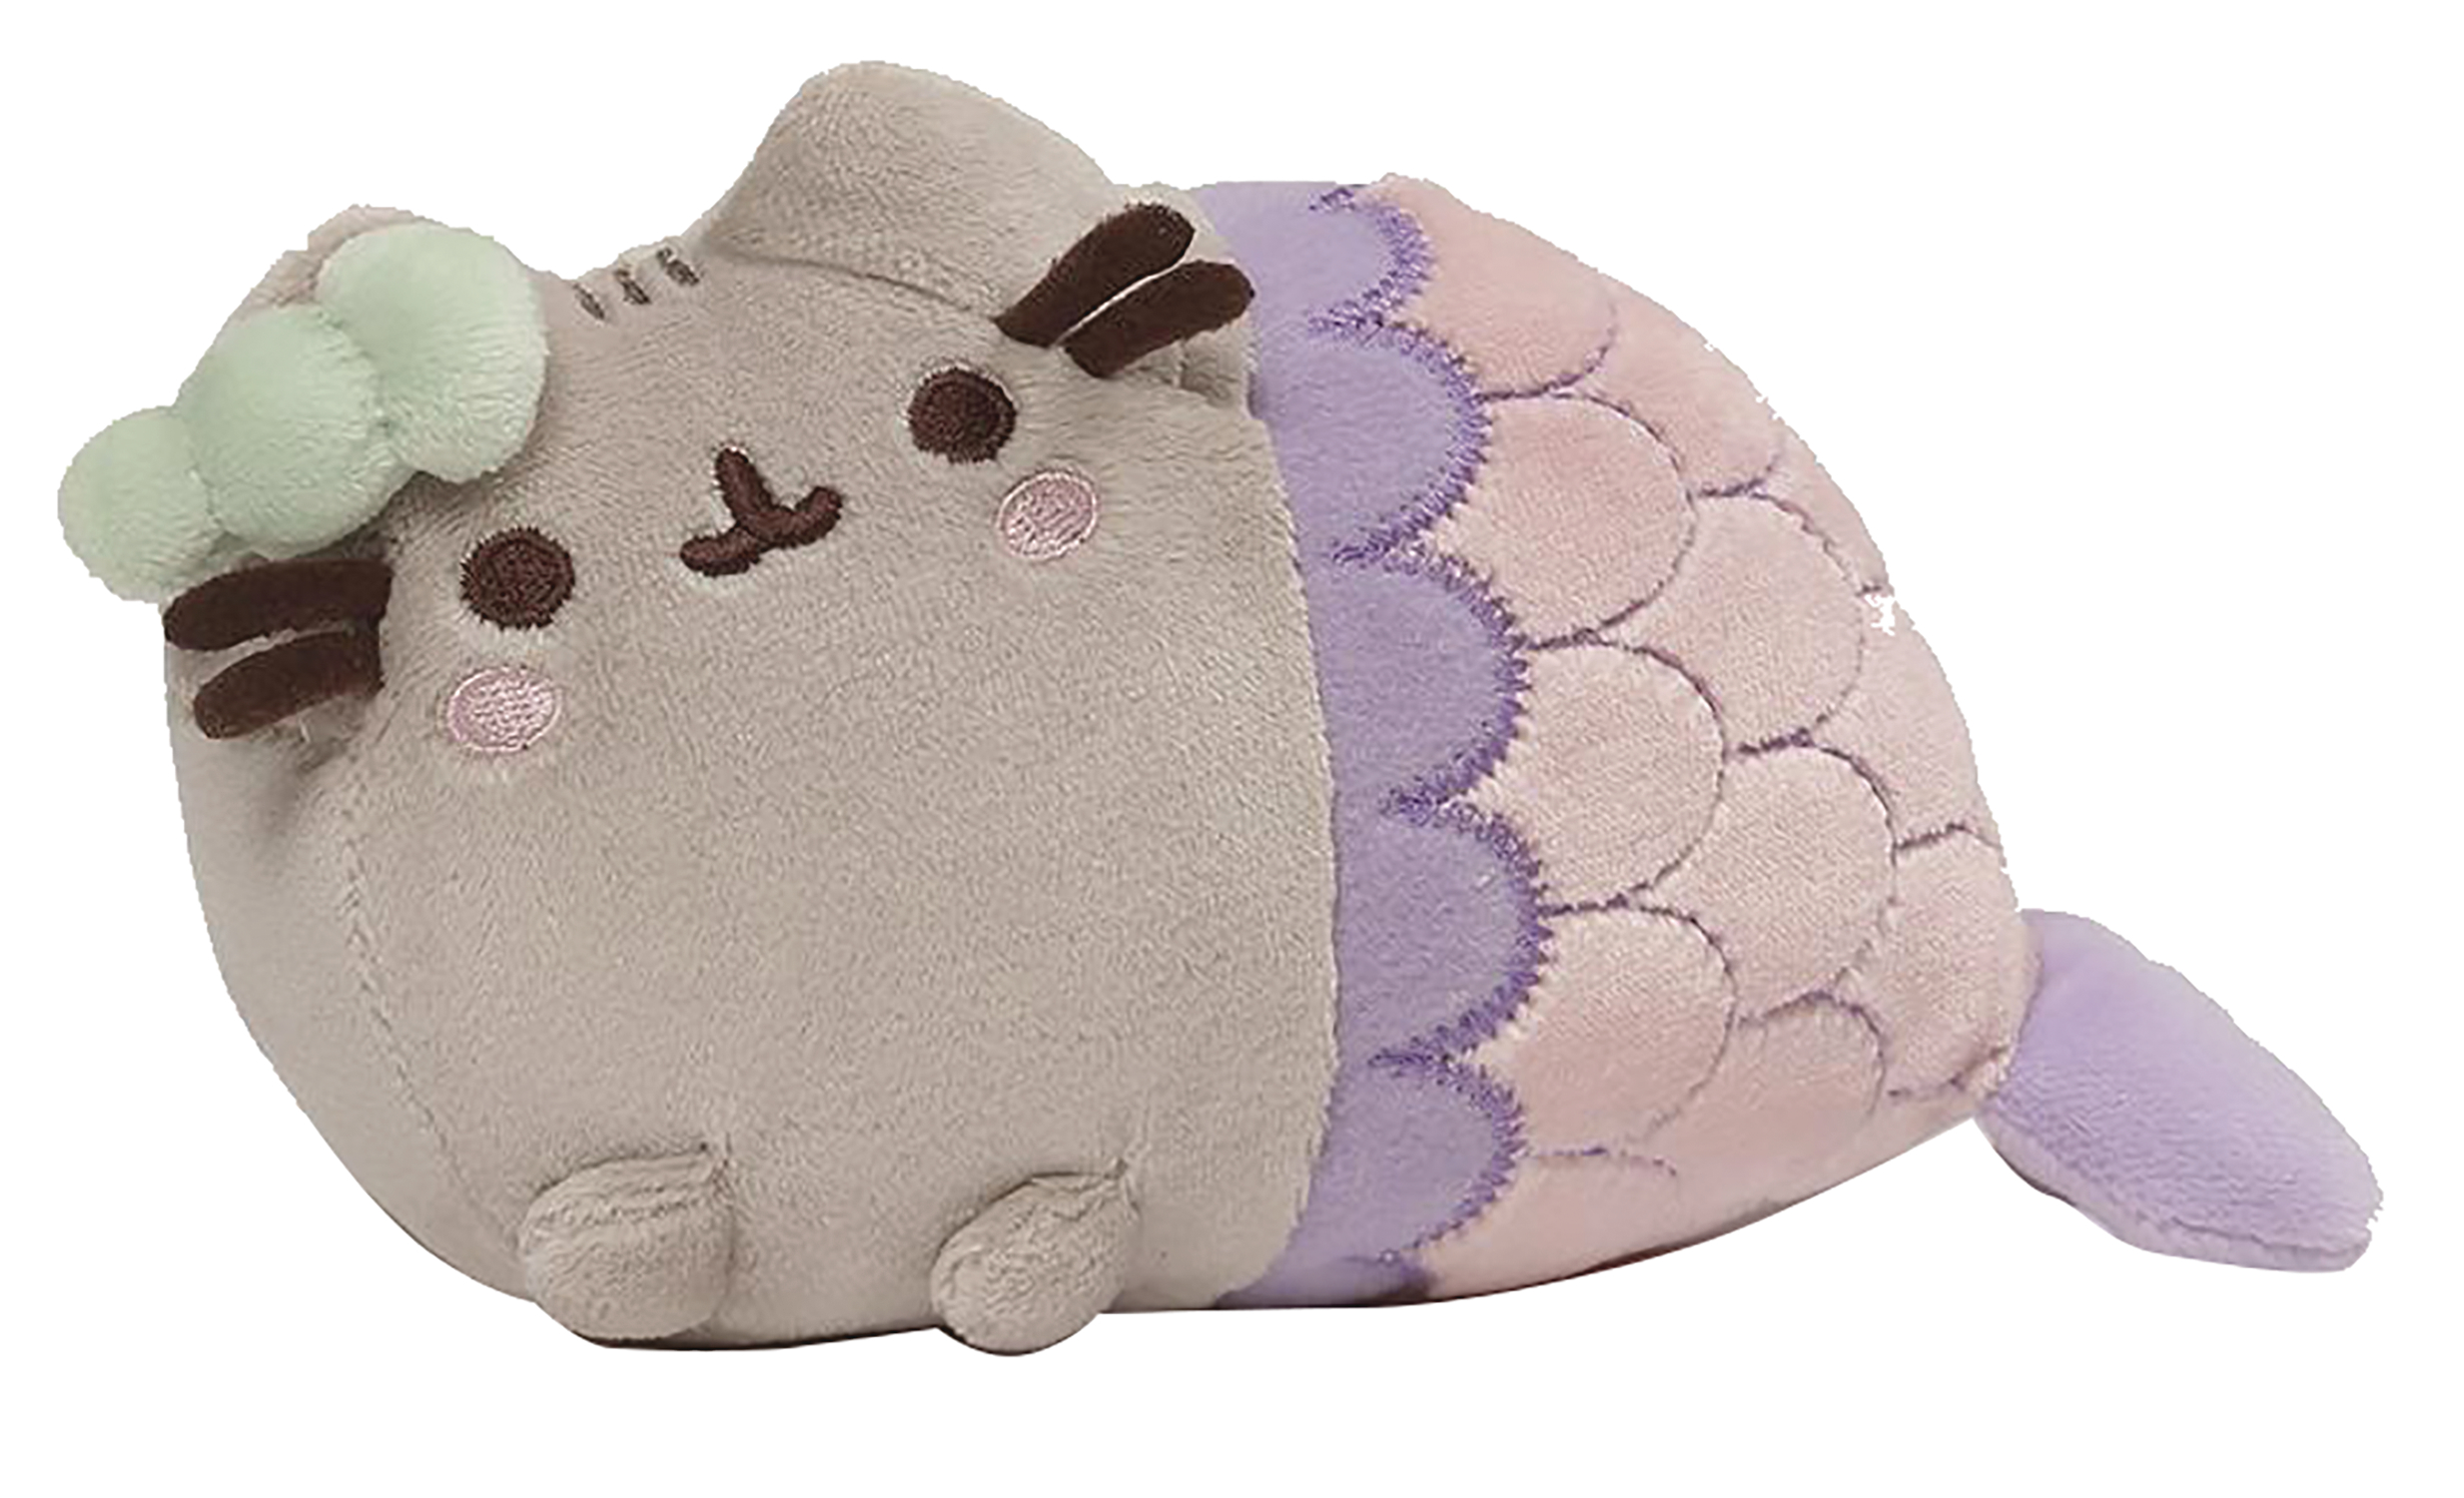 PUSHEEN MERMAID WITH SPIRAL SHELL 7 IN PLUSH